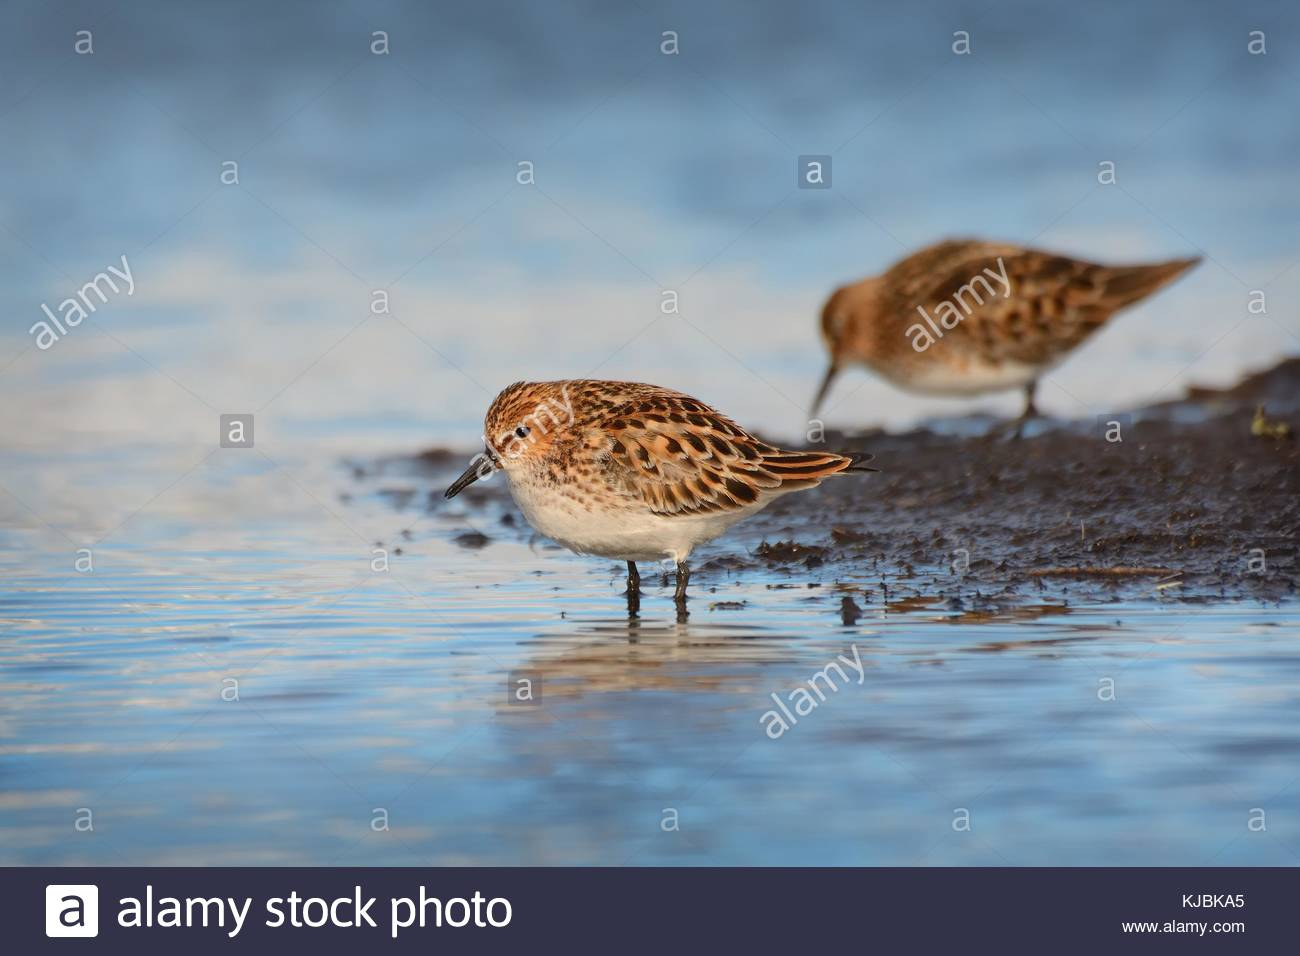 Two Little Stints (Calidris minuta) wading in shallow water with beautiful blue background. - Stock Image